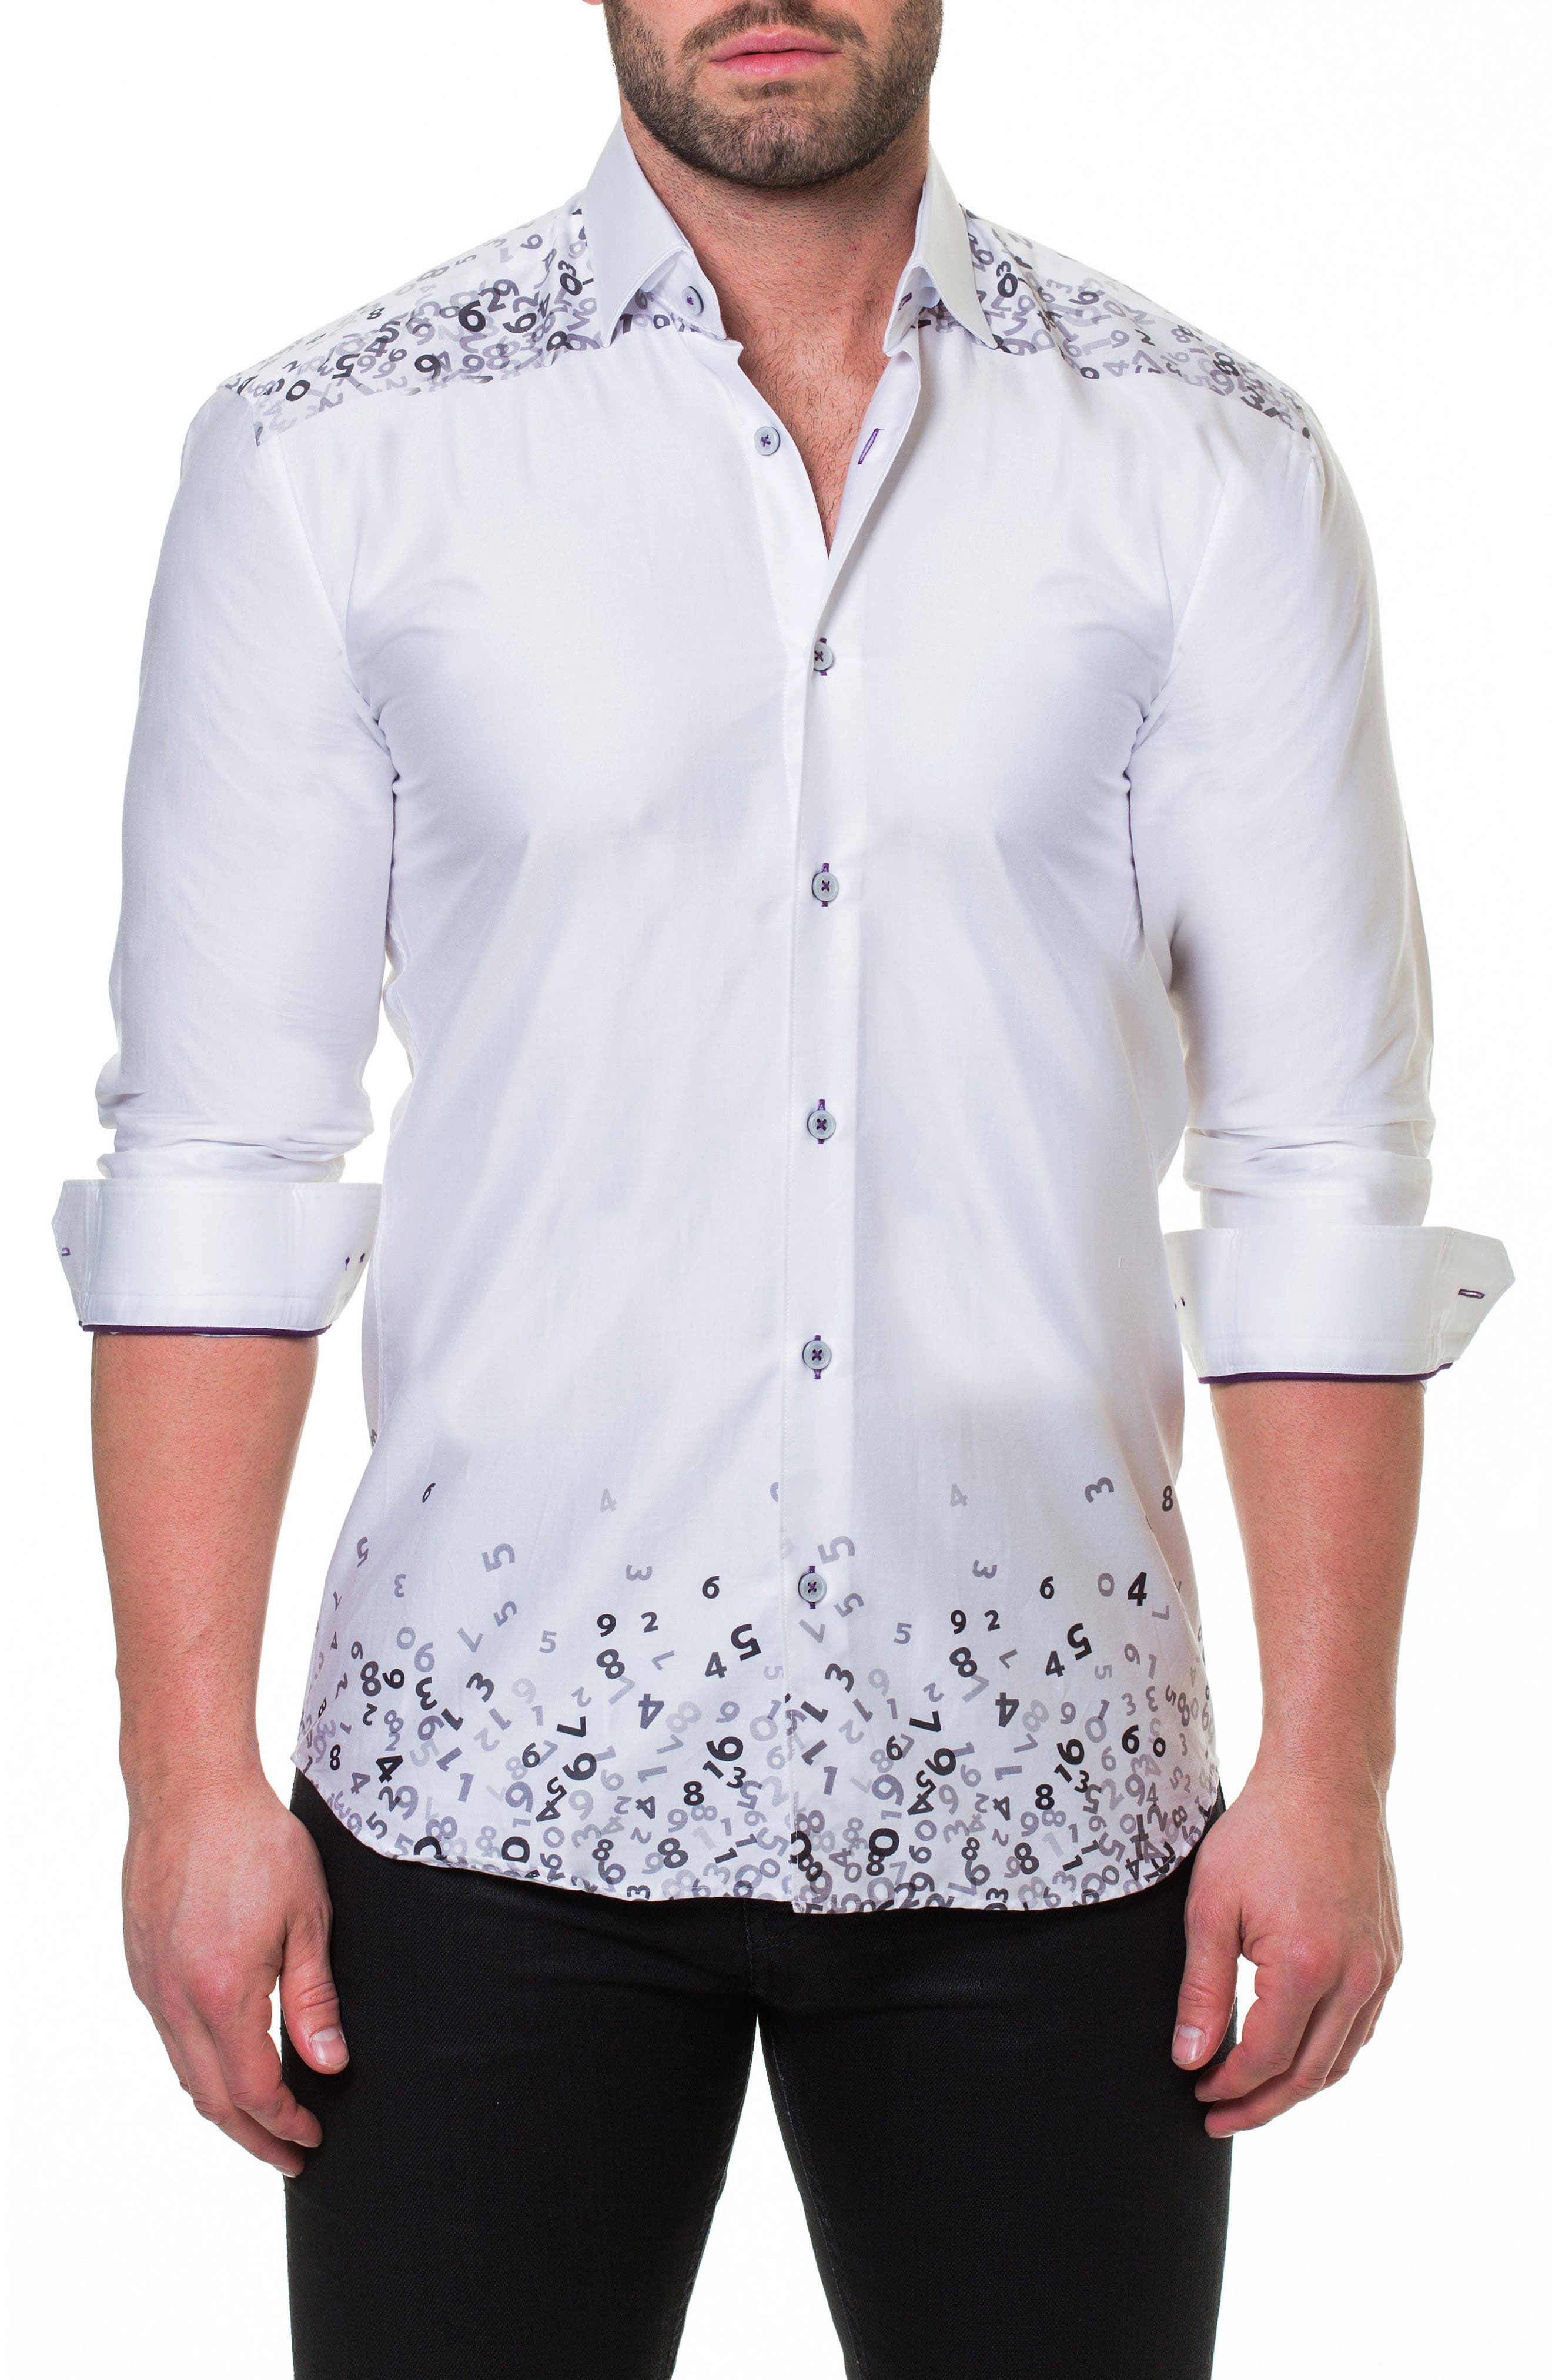 Luxor Counting White Slim Fit Sport Shirt,                             Main thumbnail 1, color,